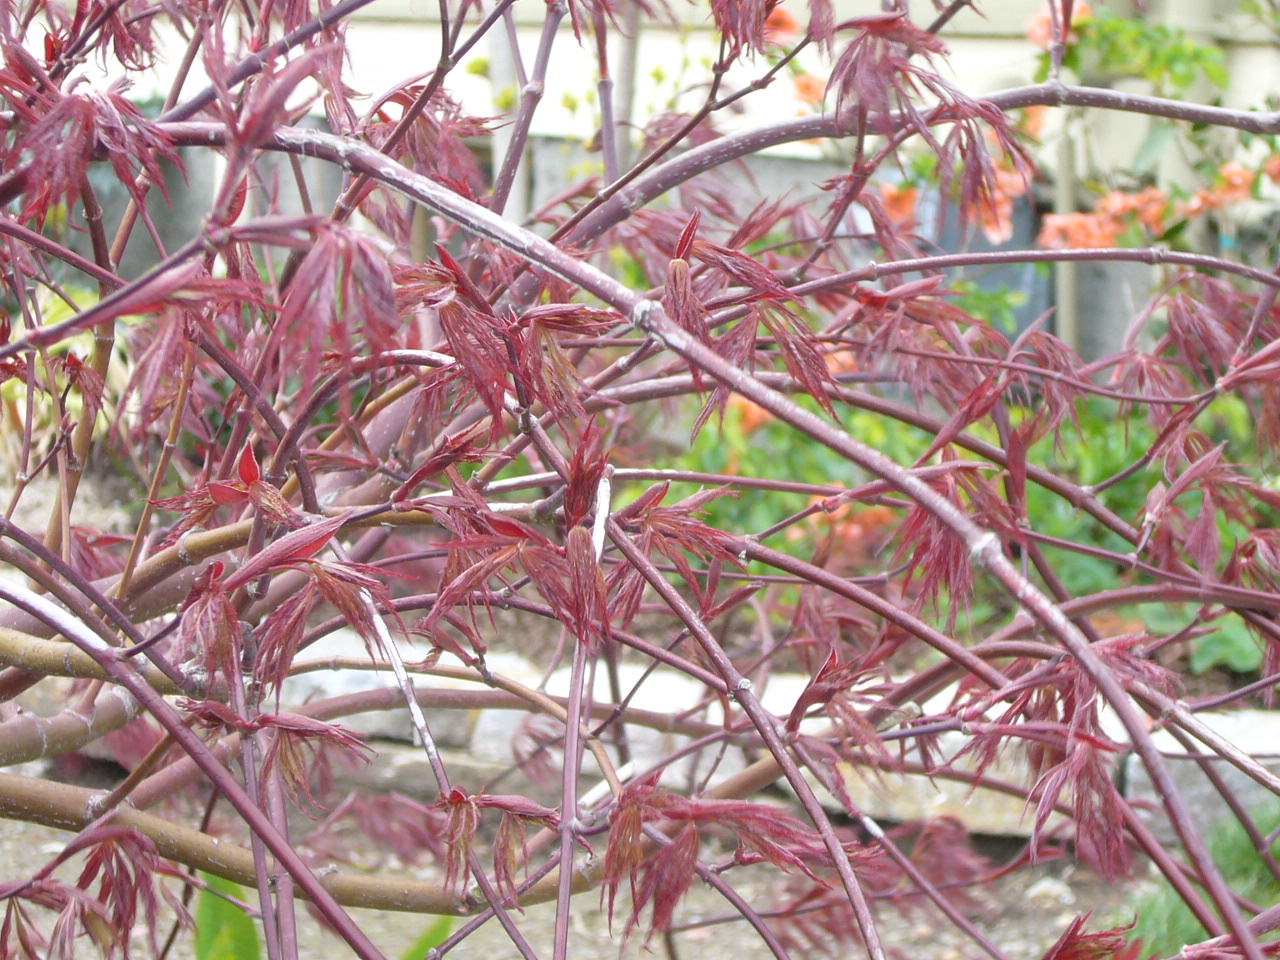 Red dragon with new leaves emerging